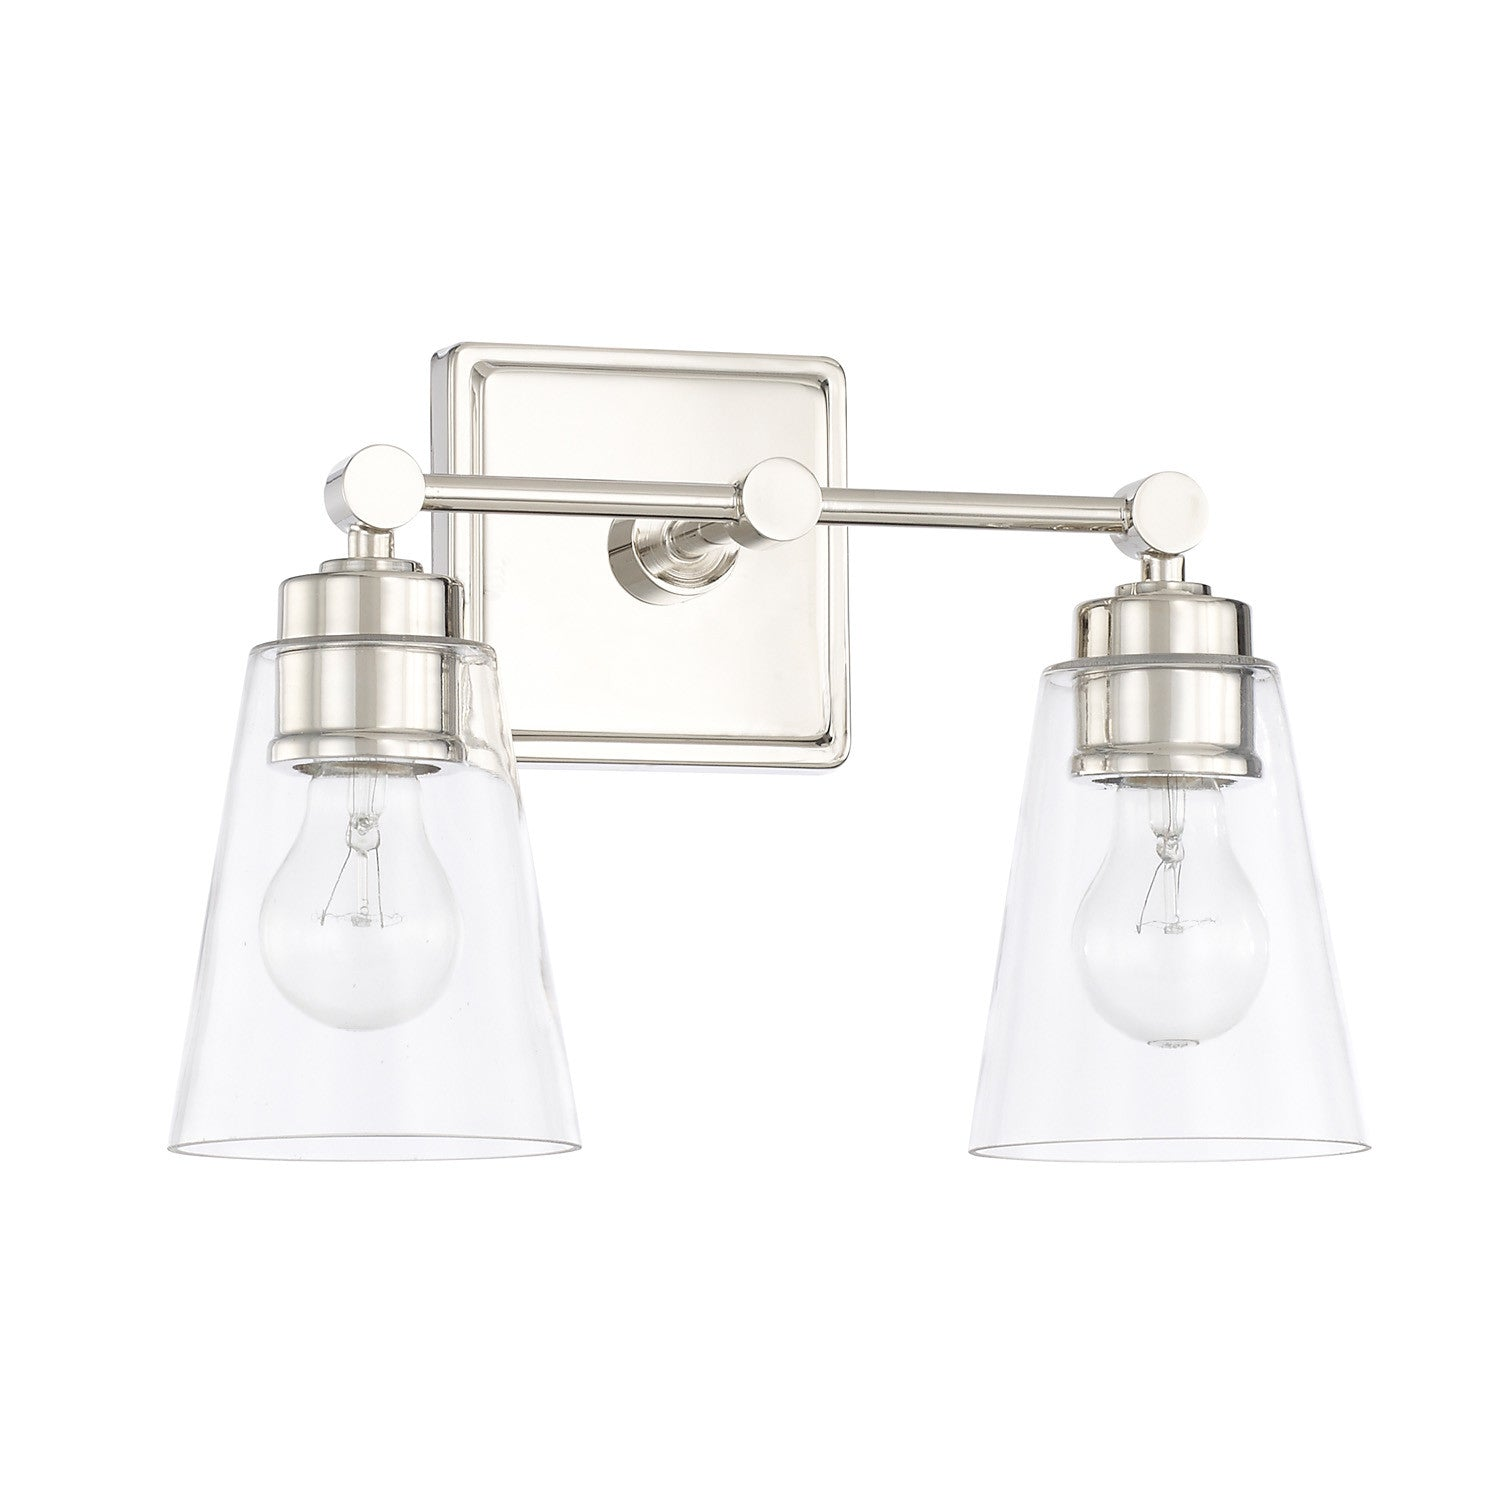 2 Light Enright Vanity in Polished Nickel with clear cone shaped glass shades by Capital Lighting 121821PN-432